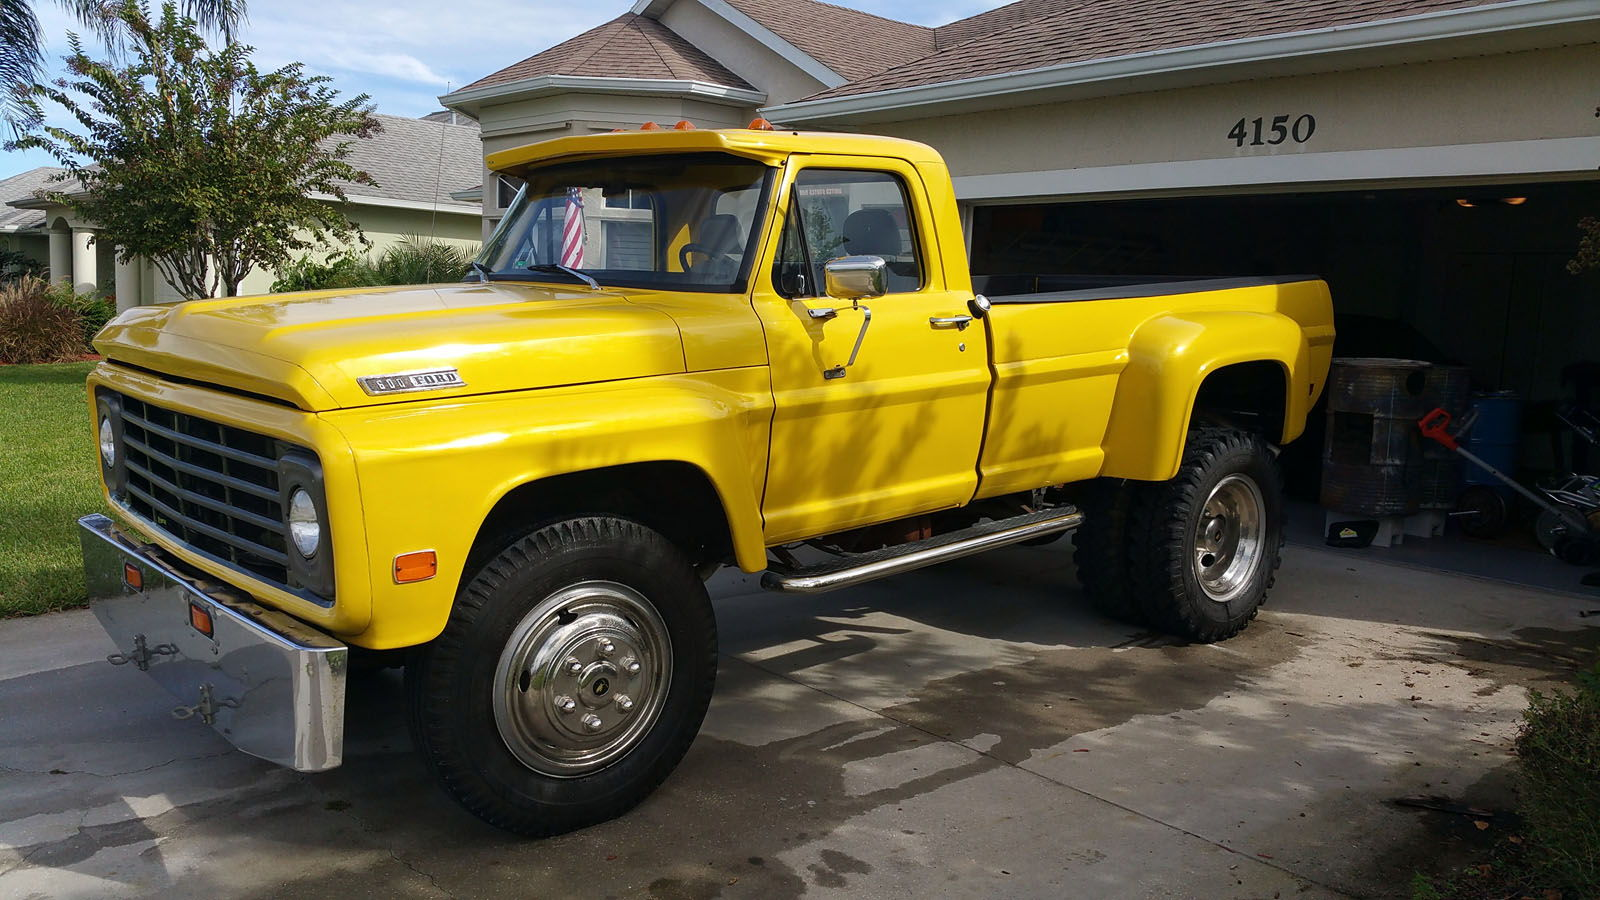 Ford F350 Dump Truck For Sale 1967 Custom Ford F600 - Ford Truck Enthusiasts Forums